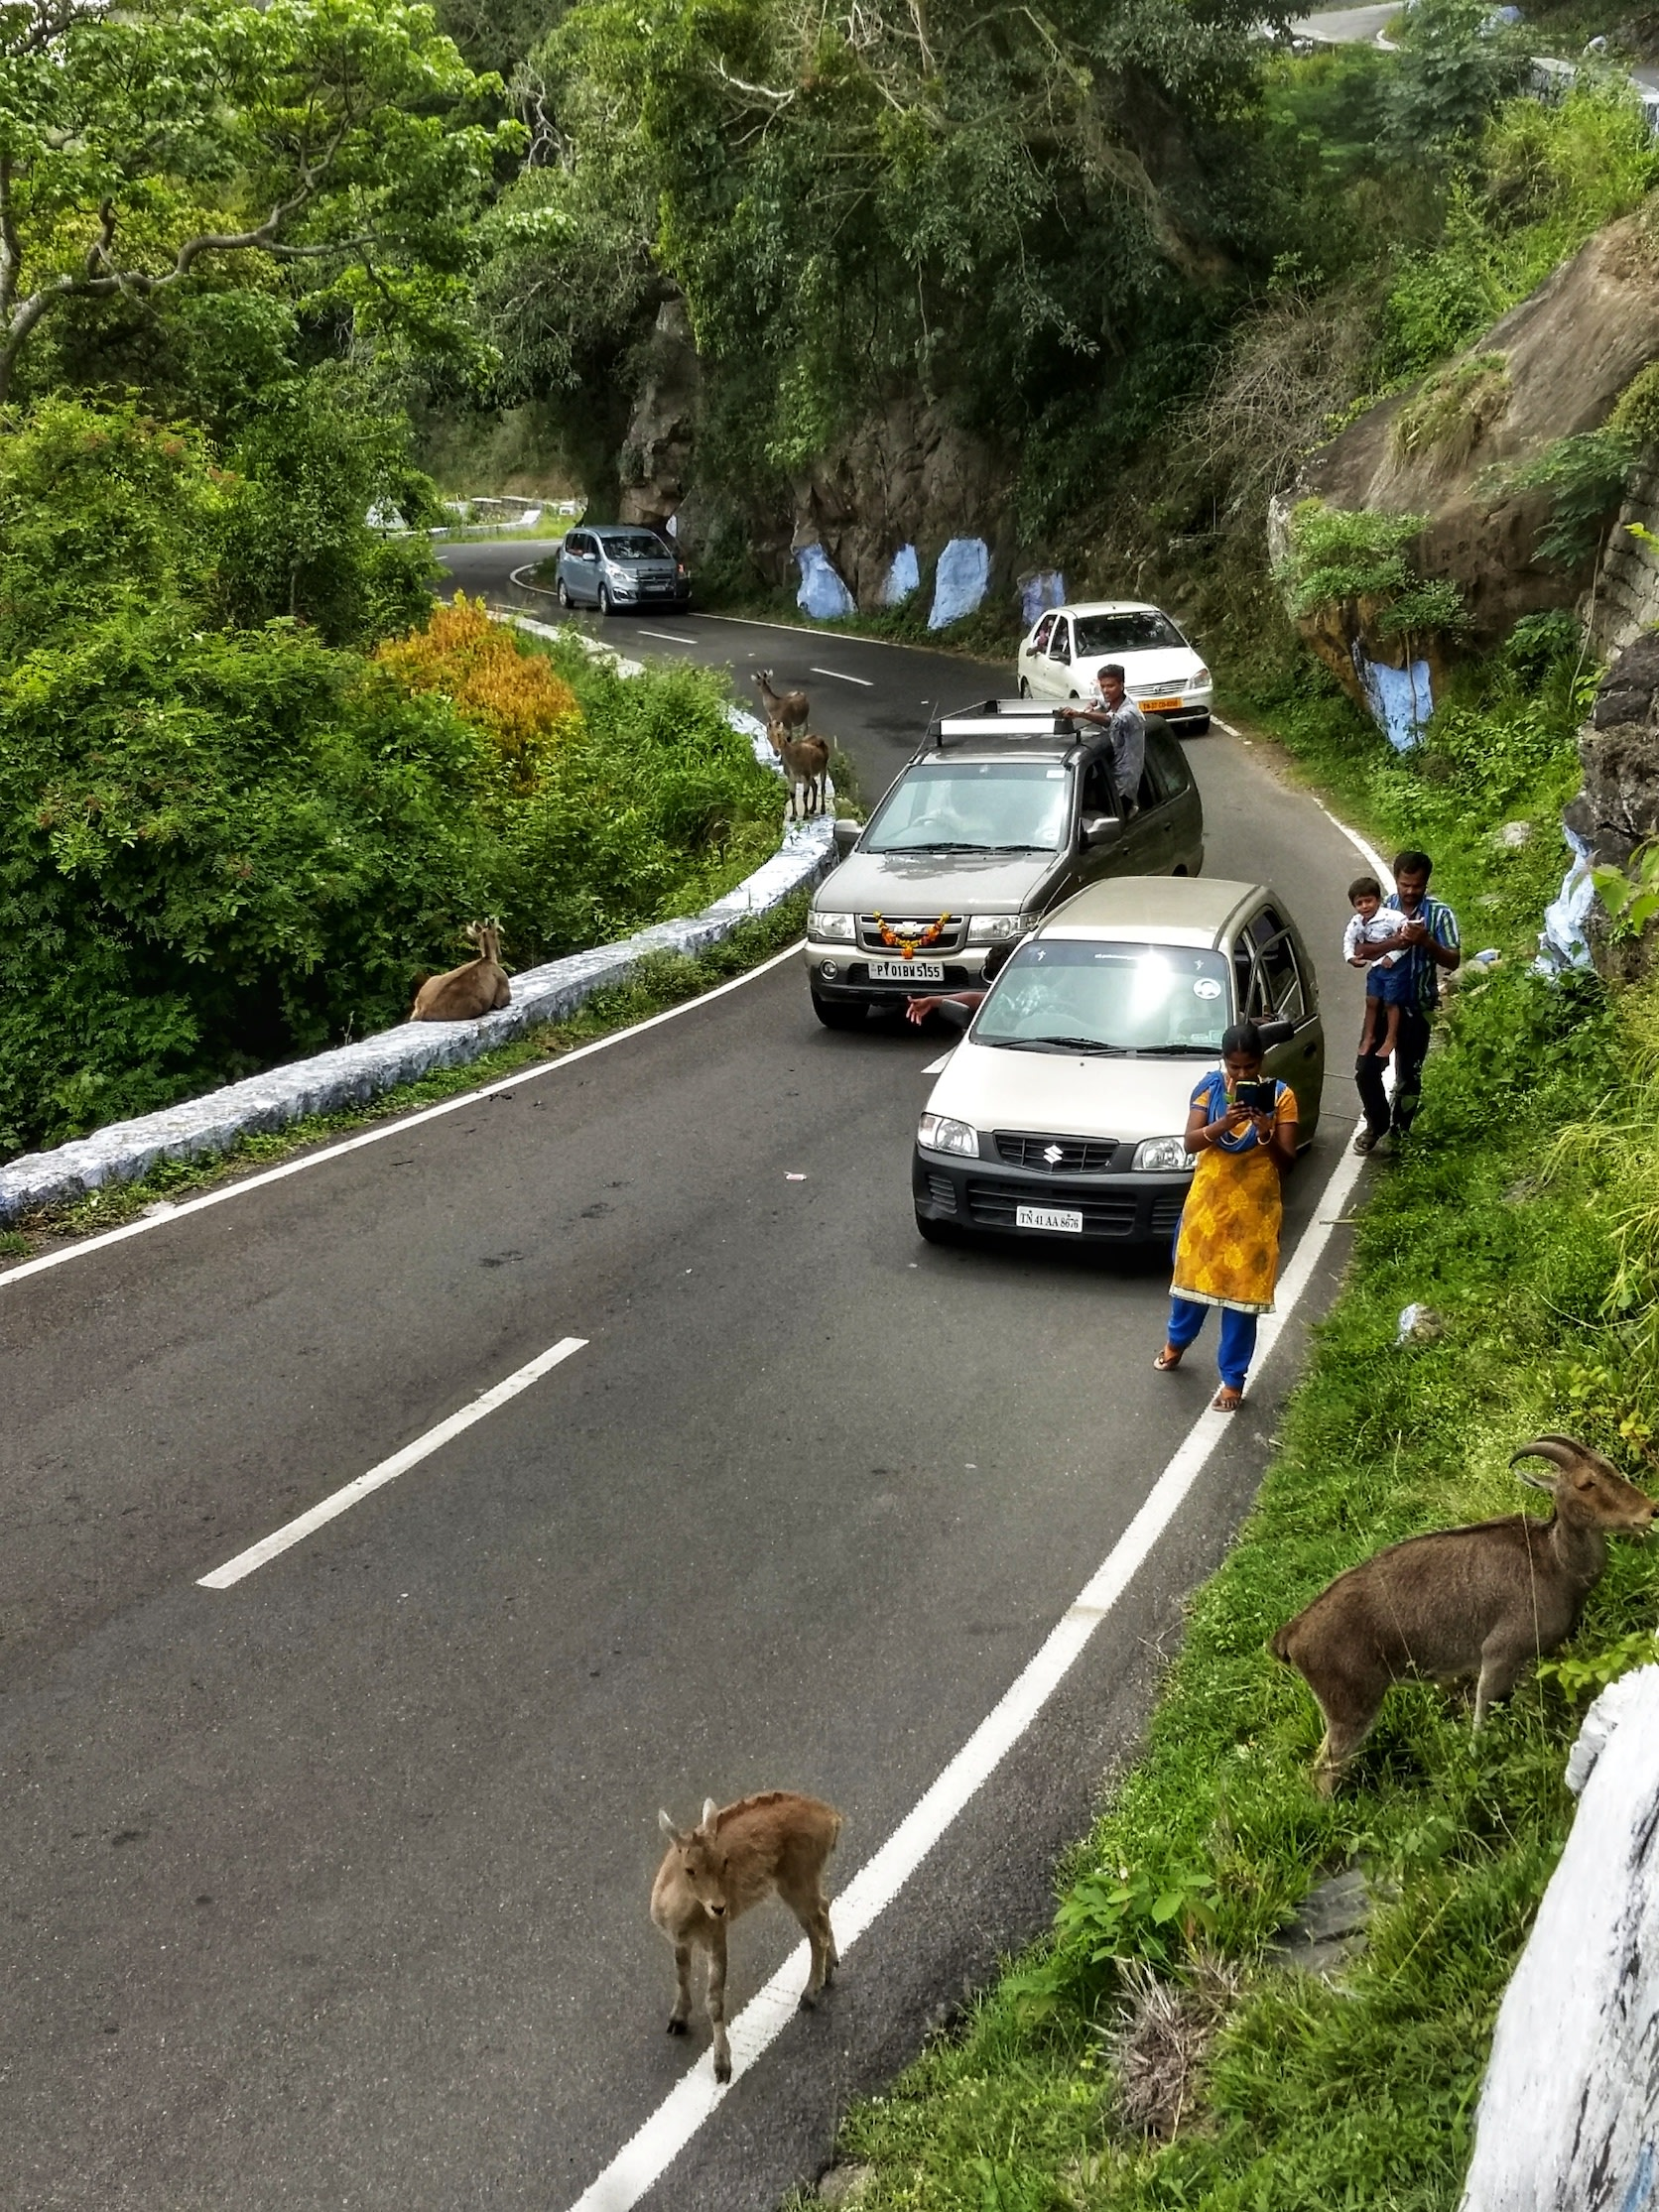 Not only do tourists disturb the animals, they also obstruct traffic by halting at various places along the 40-km stretch that cuts through this pristine forest. Photo: Pravin Shanmughanadam